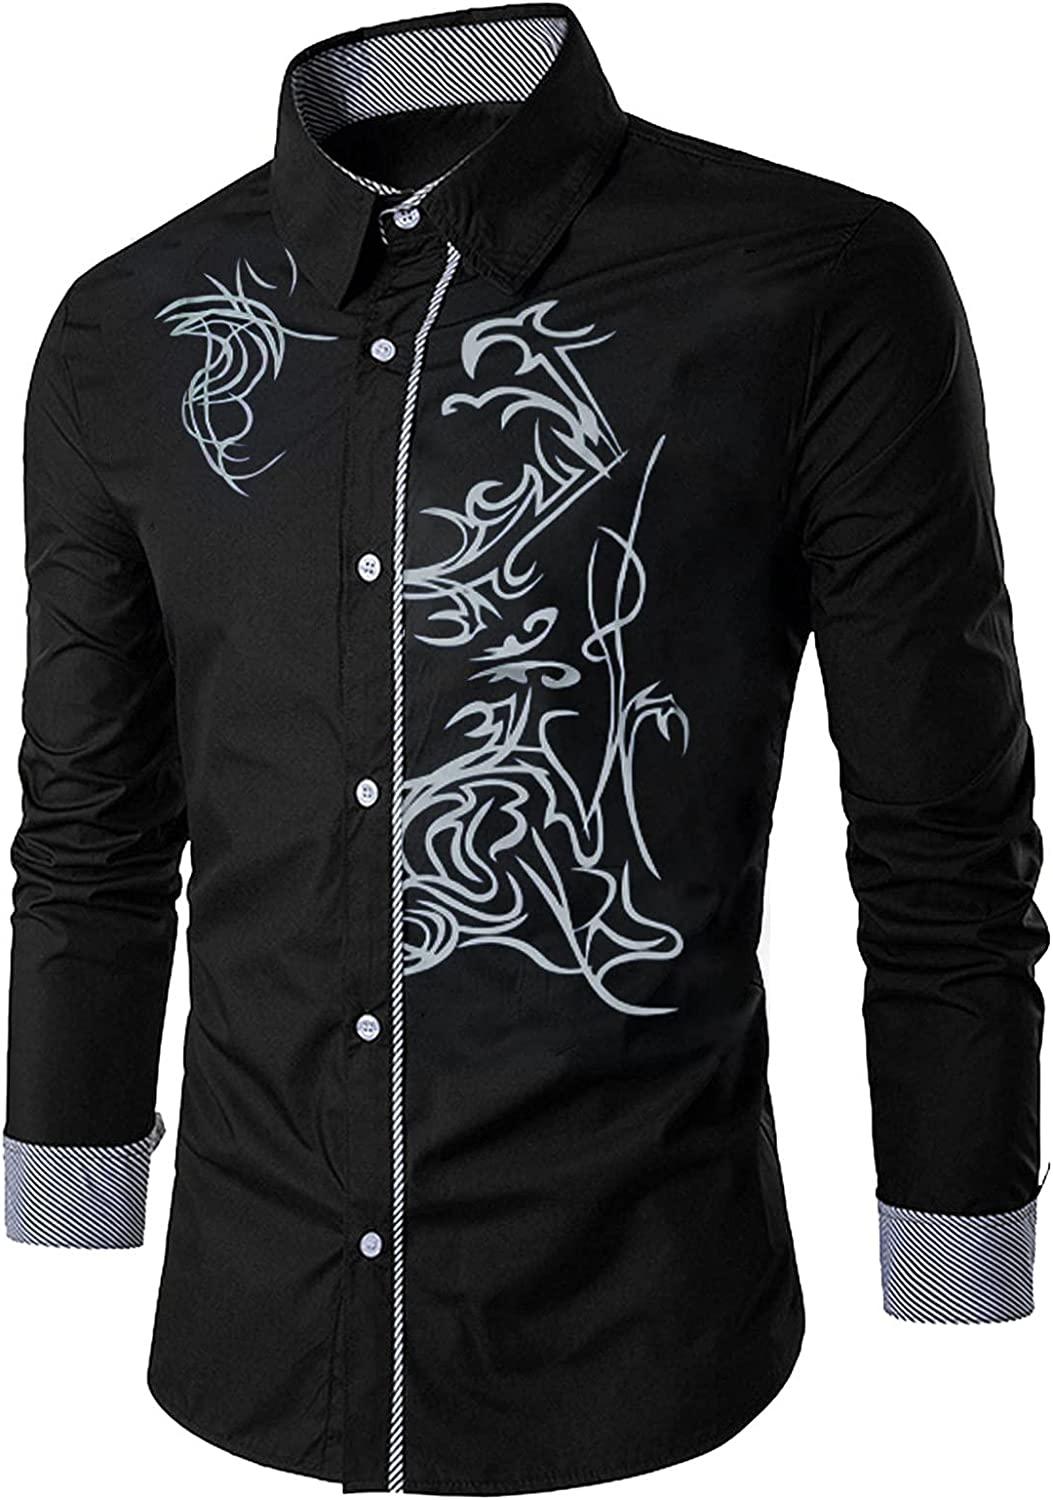 DZQUY Men's Print Button Down Dress Shirts Fashion Slim Fit Long Sleeve Polo Shirts Casual Turn-Down Collor Work Tee Tops